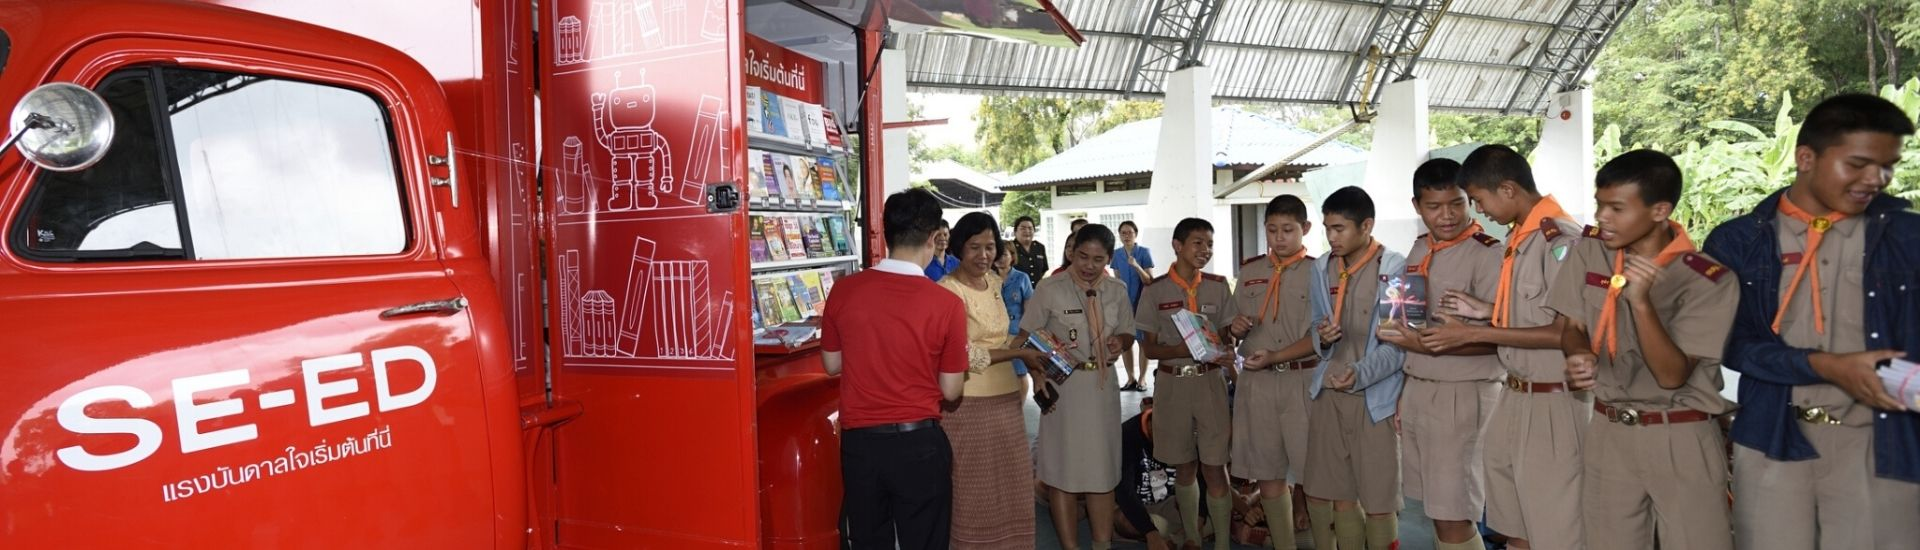 Children waiting to receive free books at the Red Truck in Thailand